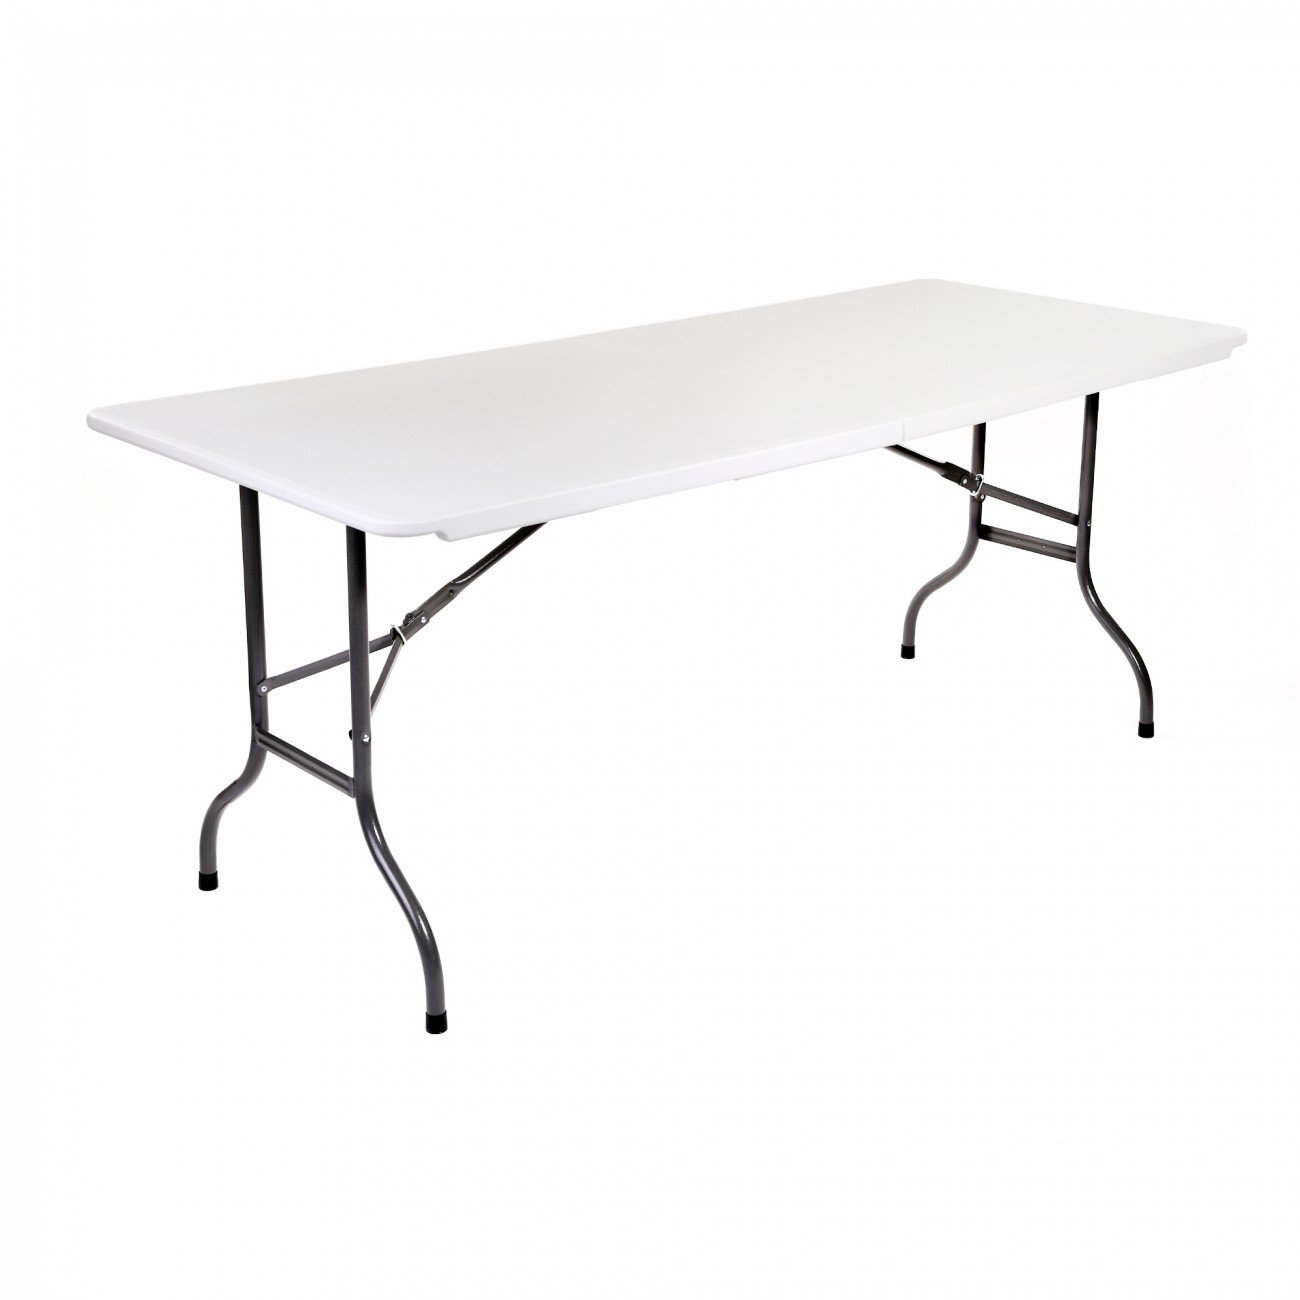 Acheter table pliante table pliable table rabattable table - Table de jardin pliante ...